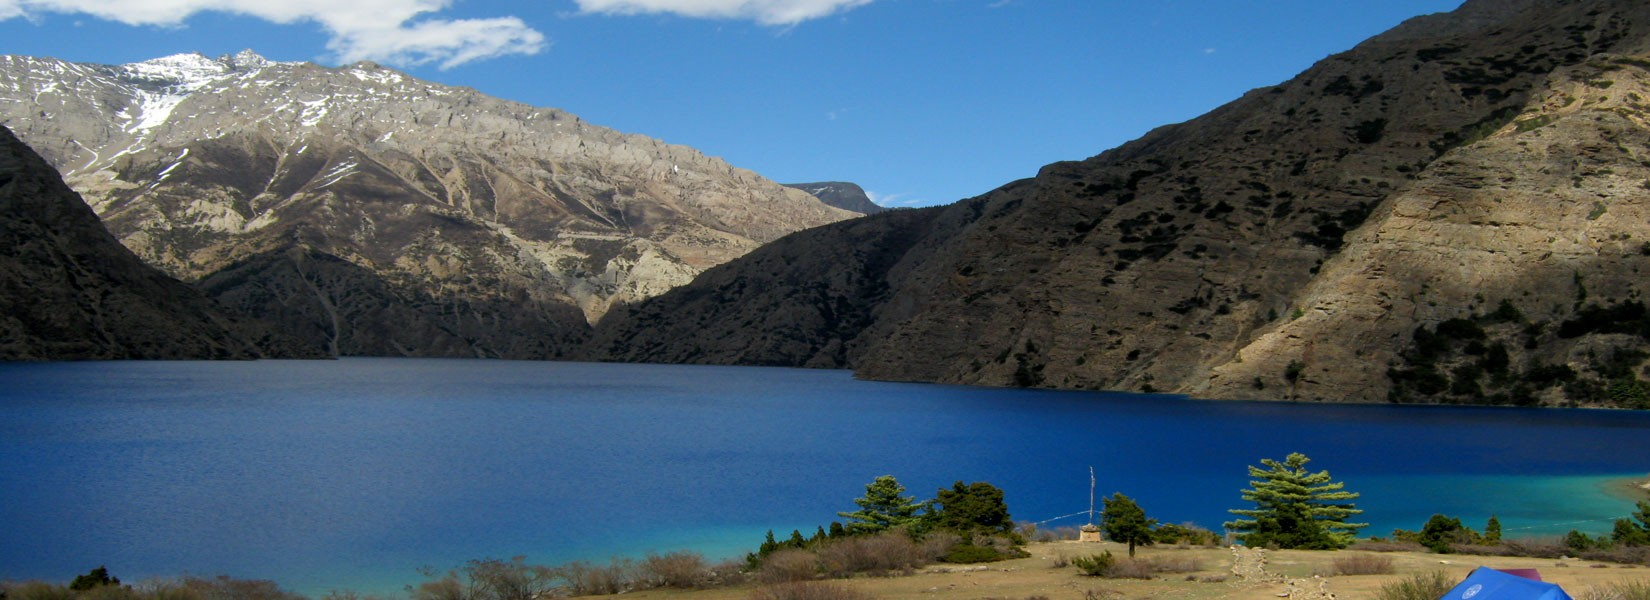 Shey Phoksundo Lake view